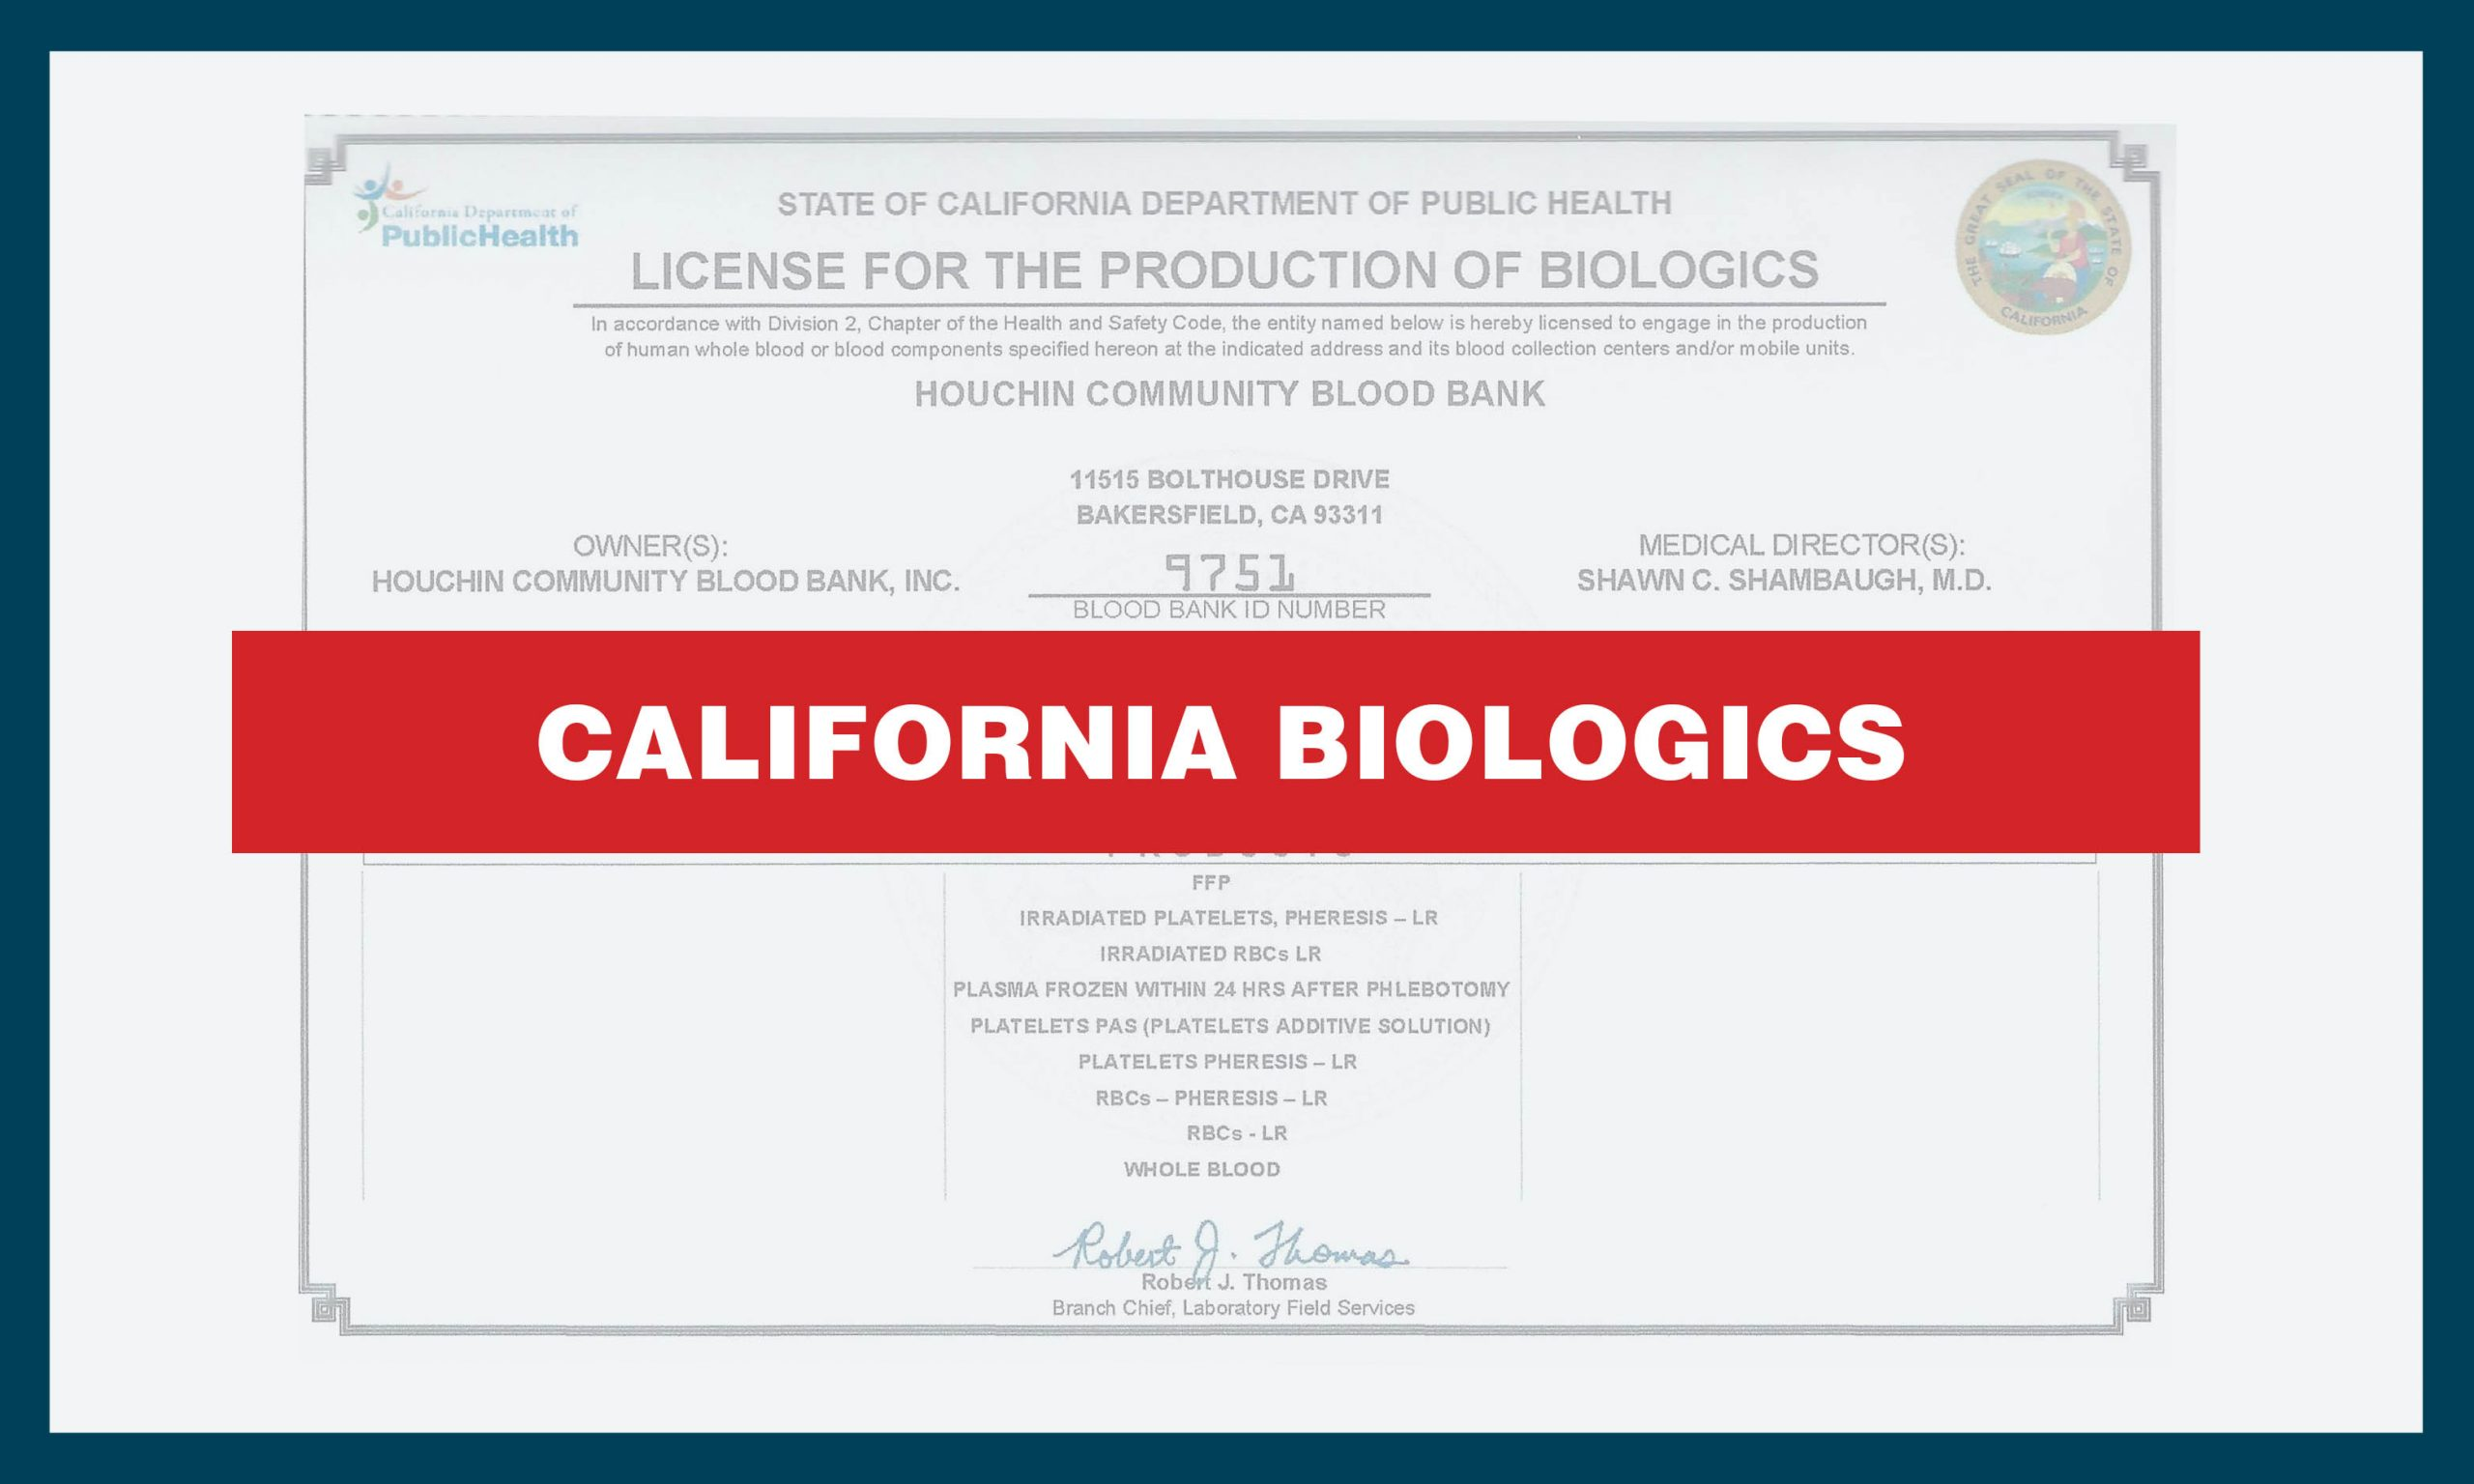 2019-California_Biologics_license_